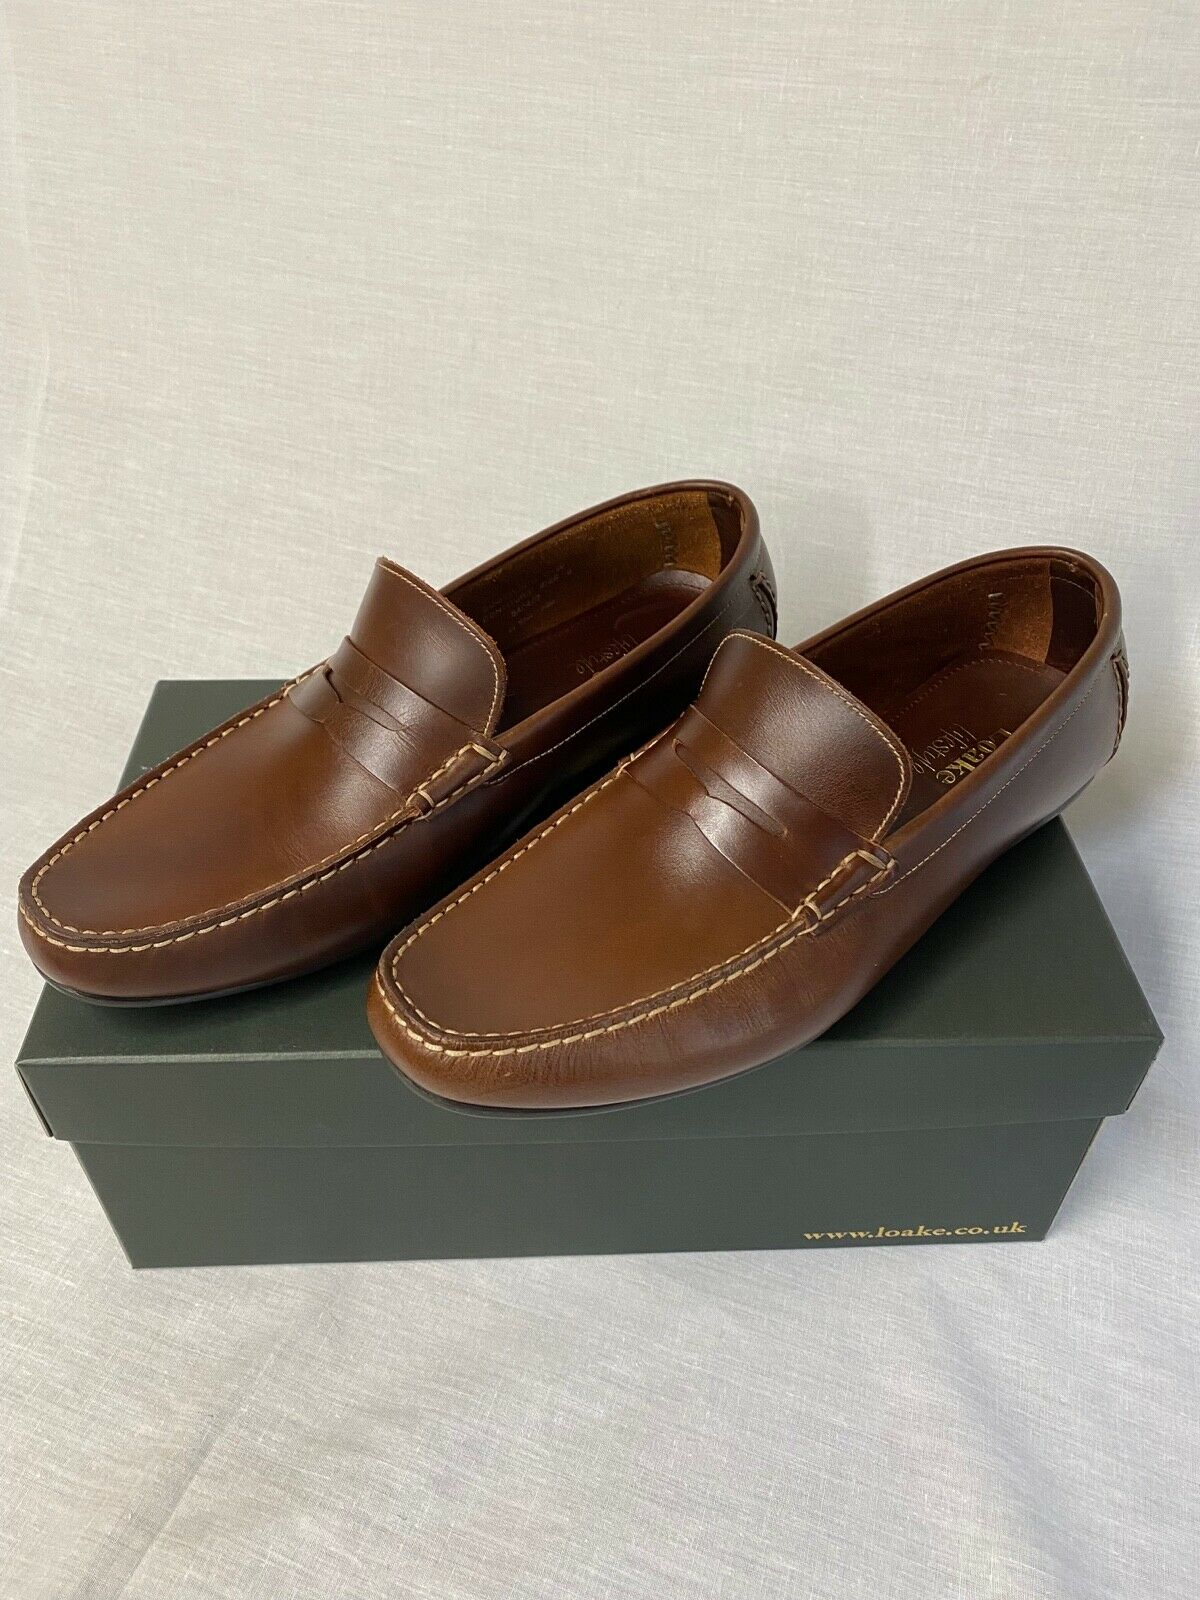 Loake Goodwood Brown Moccasin 10 F RRP - Brand New Loake